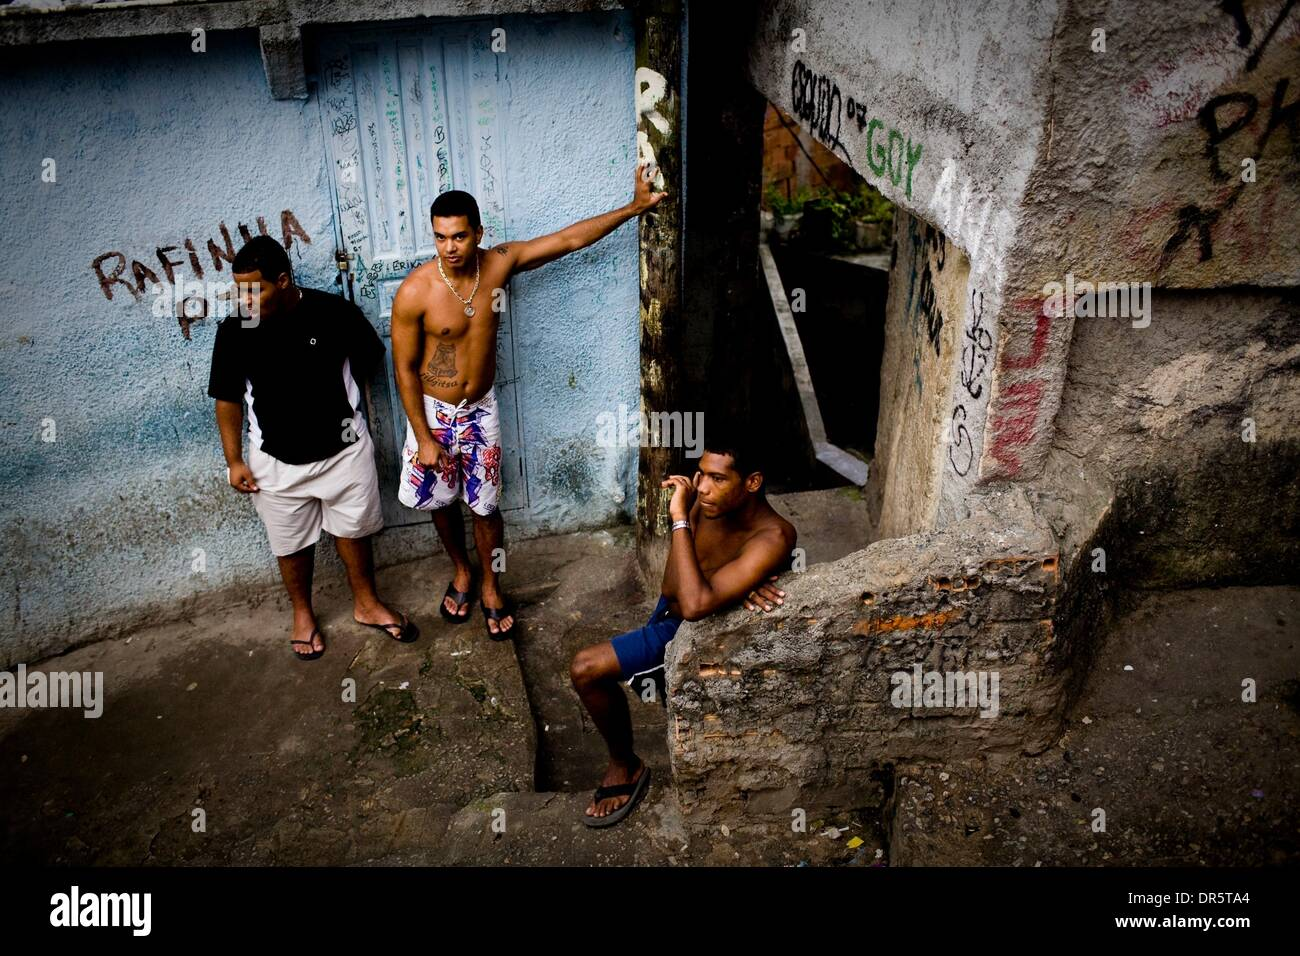 Mar 30, 2009 - Rio de Janeiro, Brazil - Young men are at the most risk in the slum to be involved with the drug gang that runs Rocinha.  The main gang in the slum is ADA or Amigos dos Amigos, which is one of the largest criminal organizations in the city.  (Credit Image: © Matthew Williams/zReportage.com/ZUMA) - Stock Image